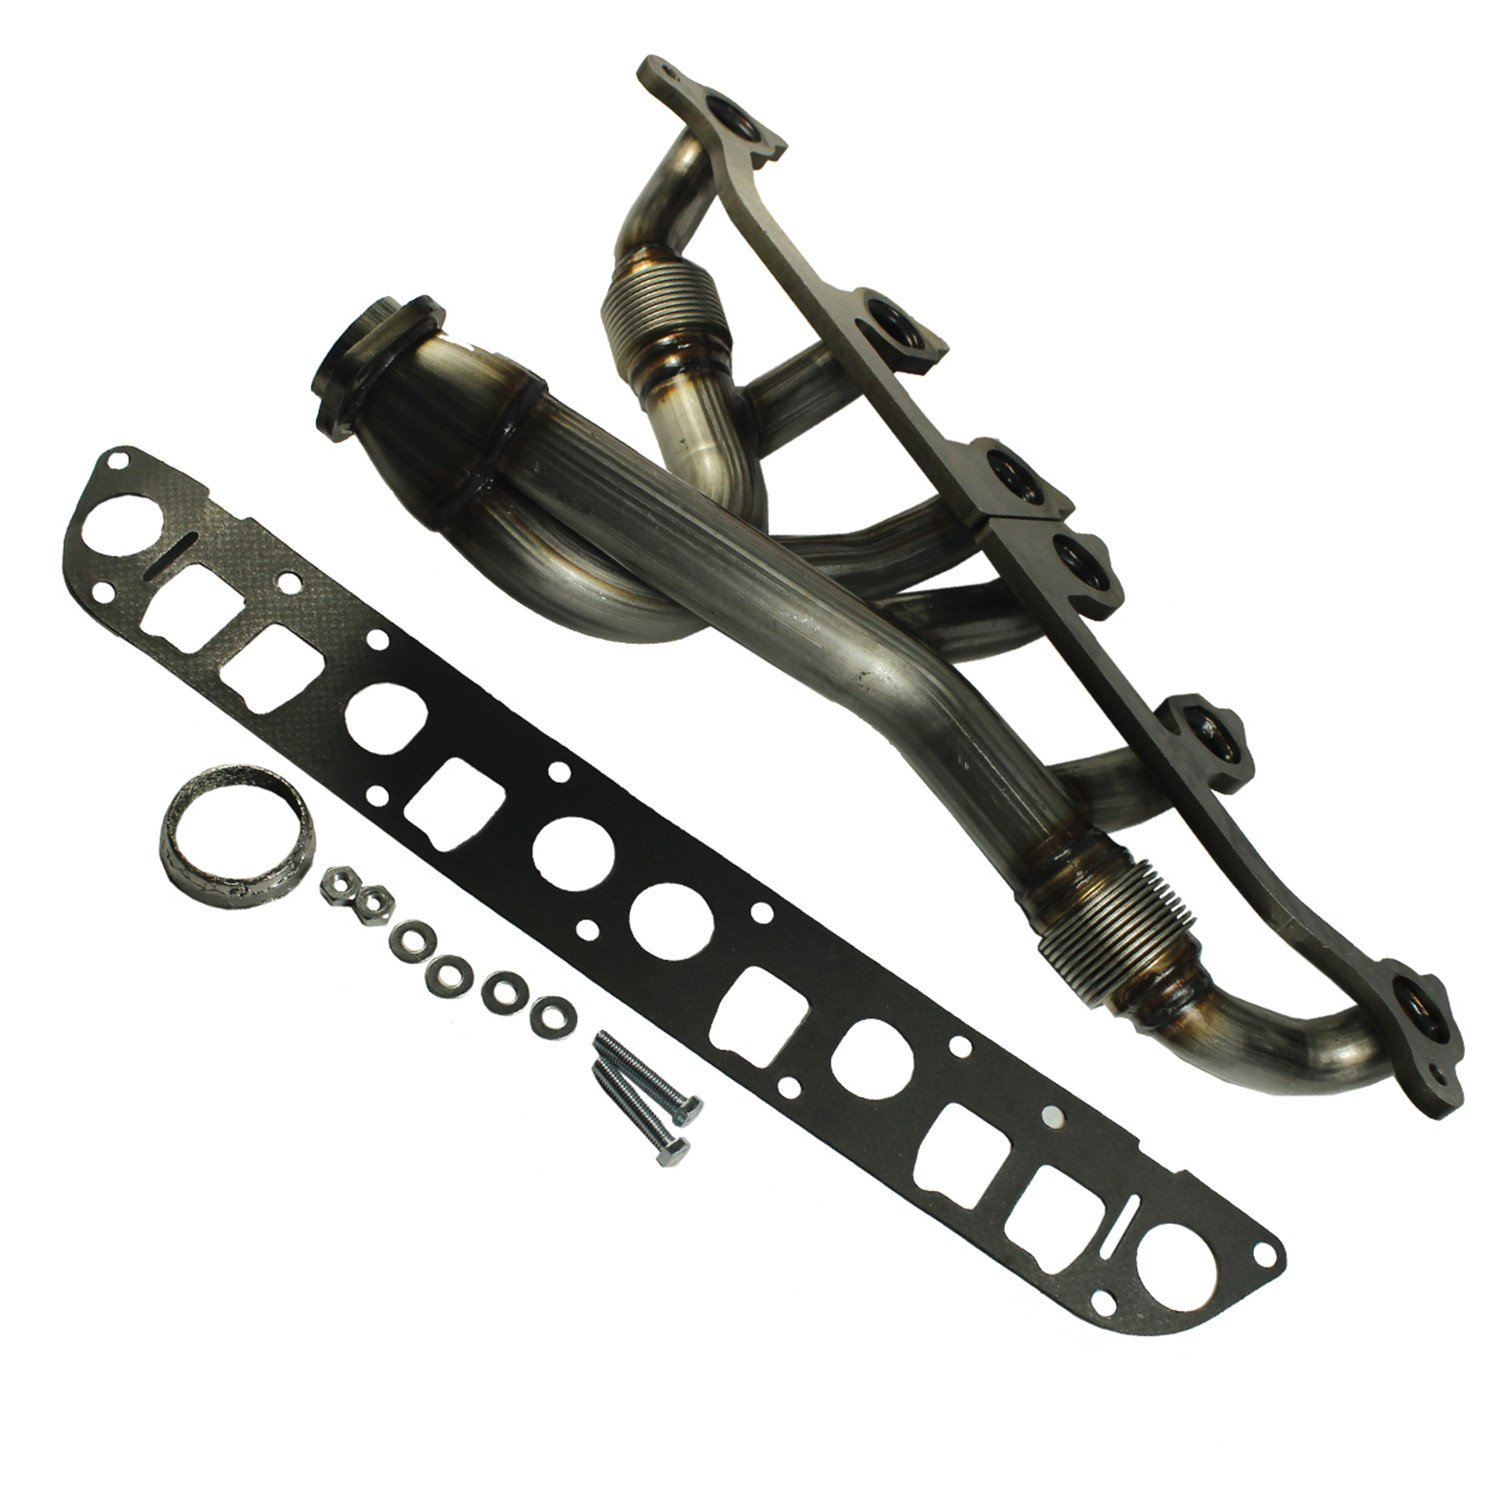 JDMSPEED New Stainless Steel Exhaust Manifold & Gasket Kit Replacement For Grand Cherokee Wrangler 4.0L Replacement For Jeeps Select 1991-1999 (4.0L Engine Only) Replaces 33007072, 4883385